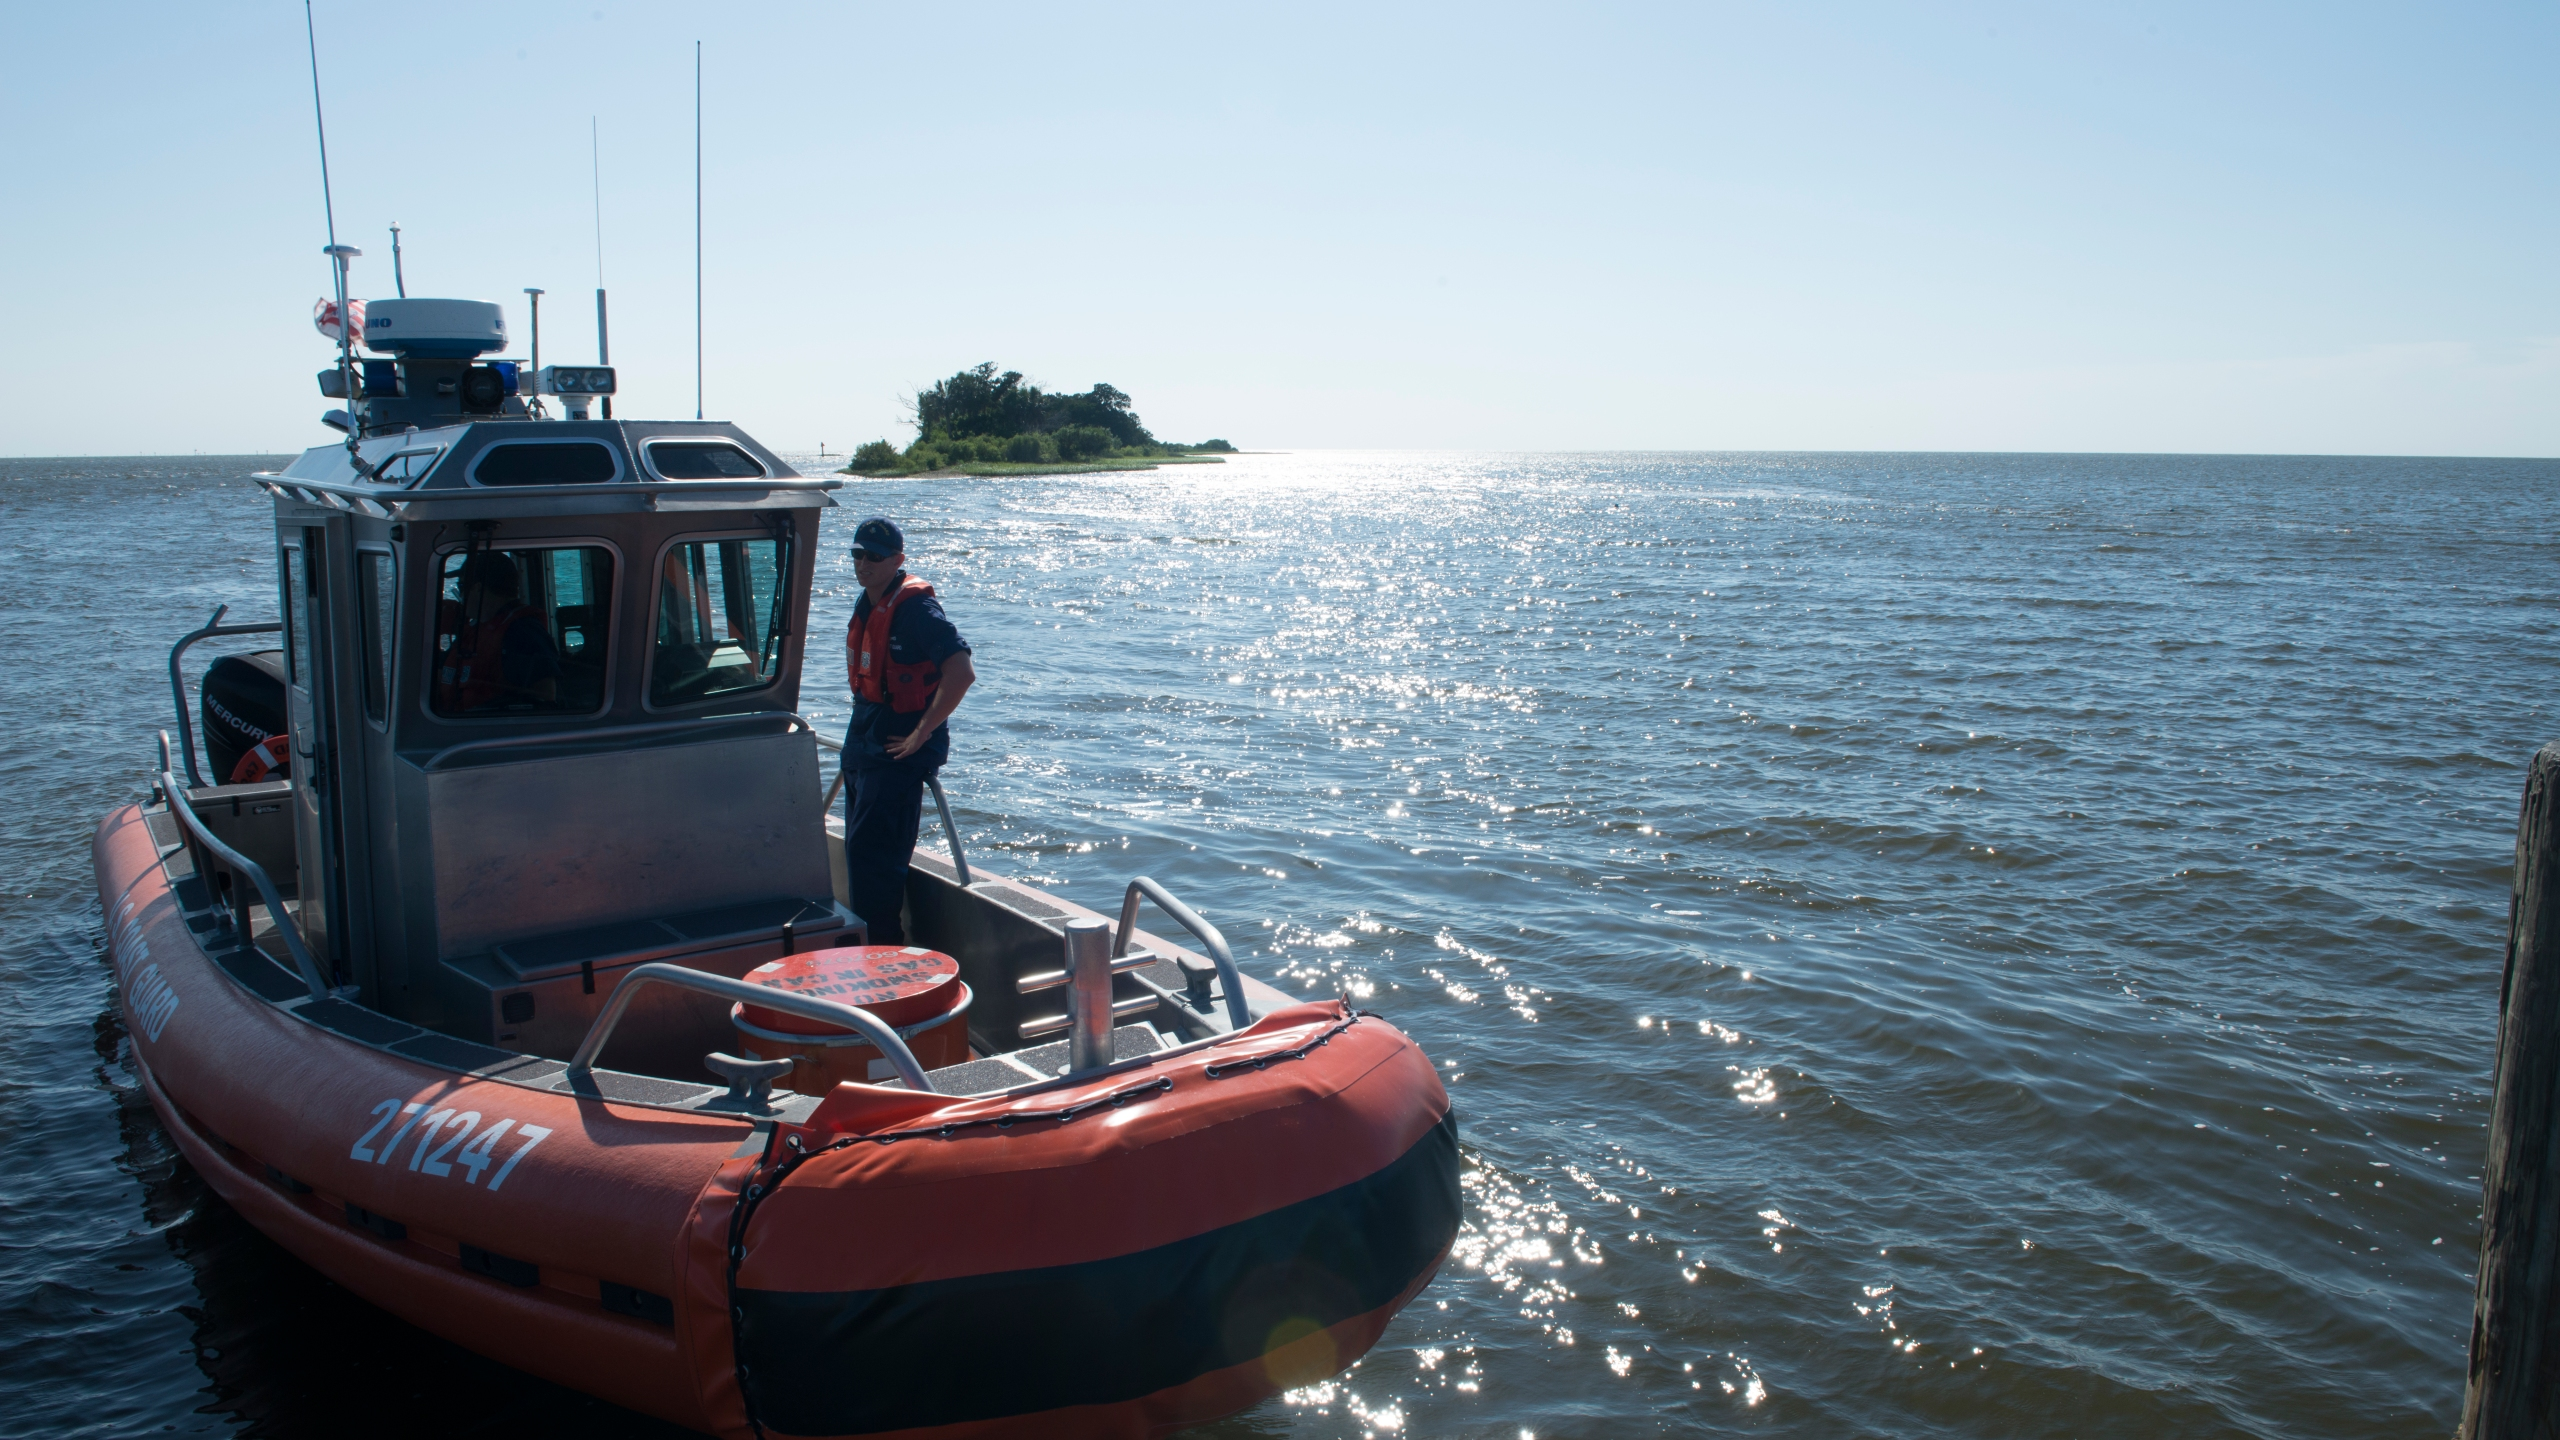 Coast Guard continues search for missing diver_149238